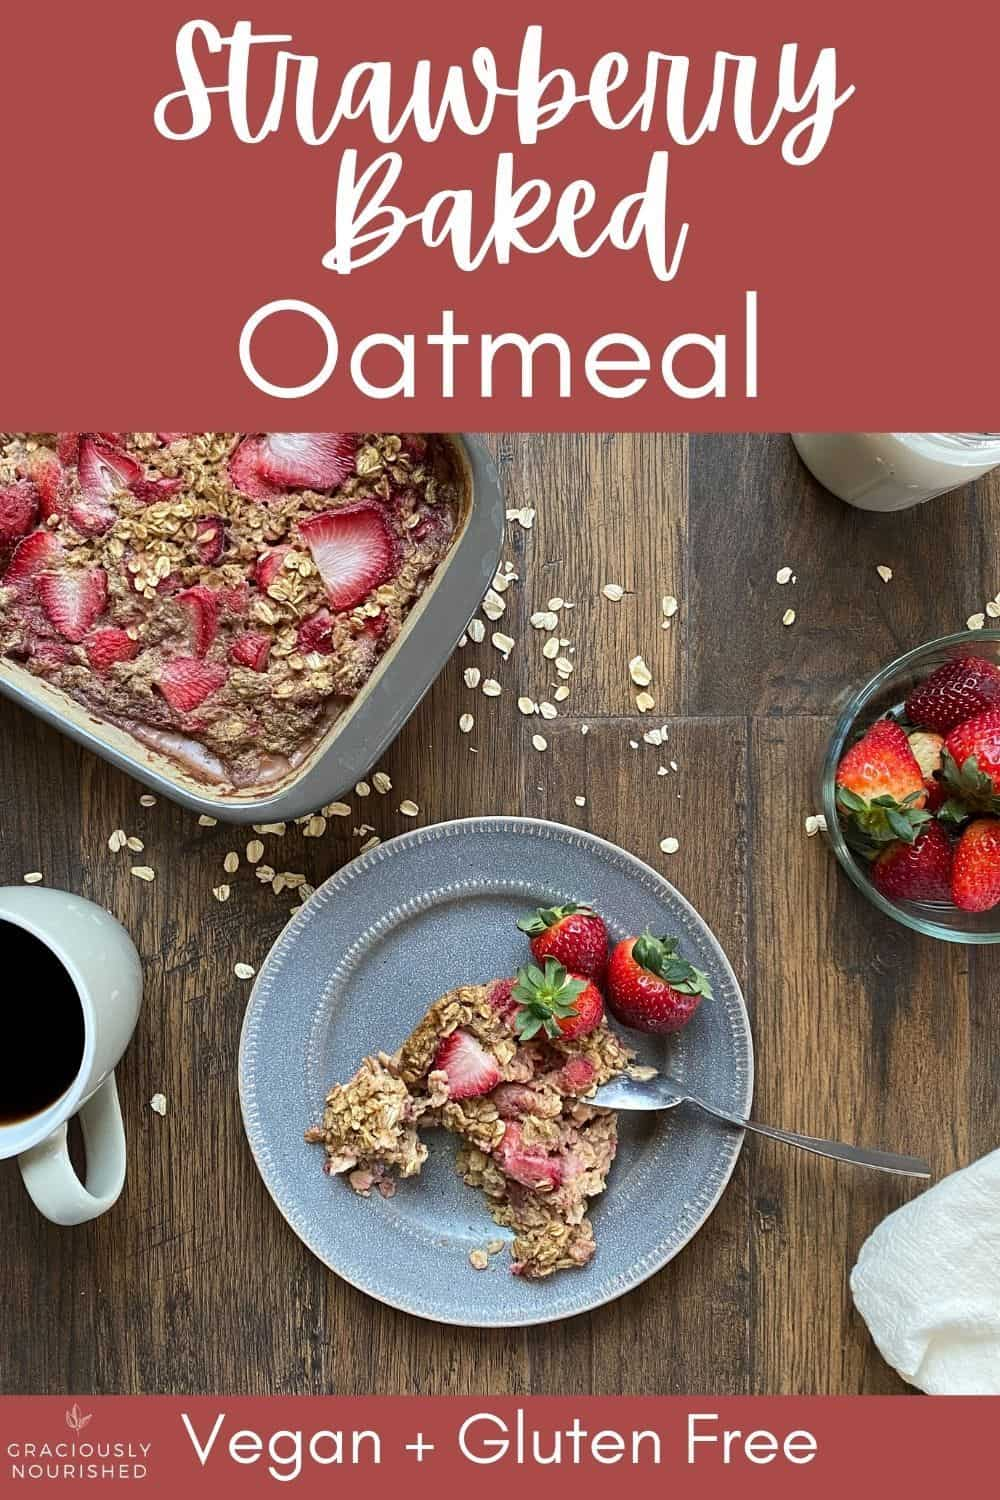 Strawberry baked oatmeal Vegan & gluten free. Picture of oatmeal on plate, coffee, creamer, bowl of berries, and the pan of oatmeal